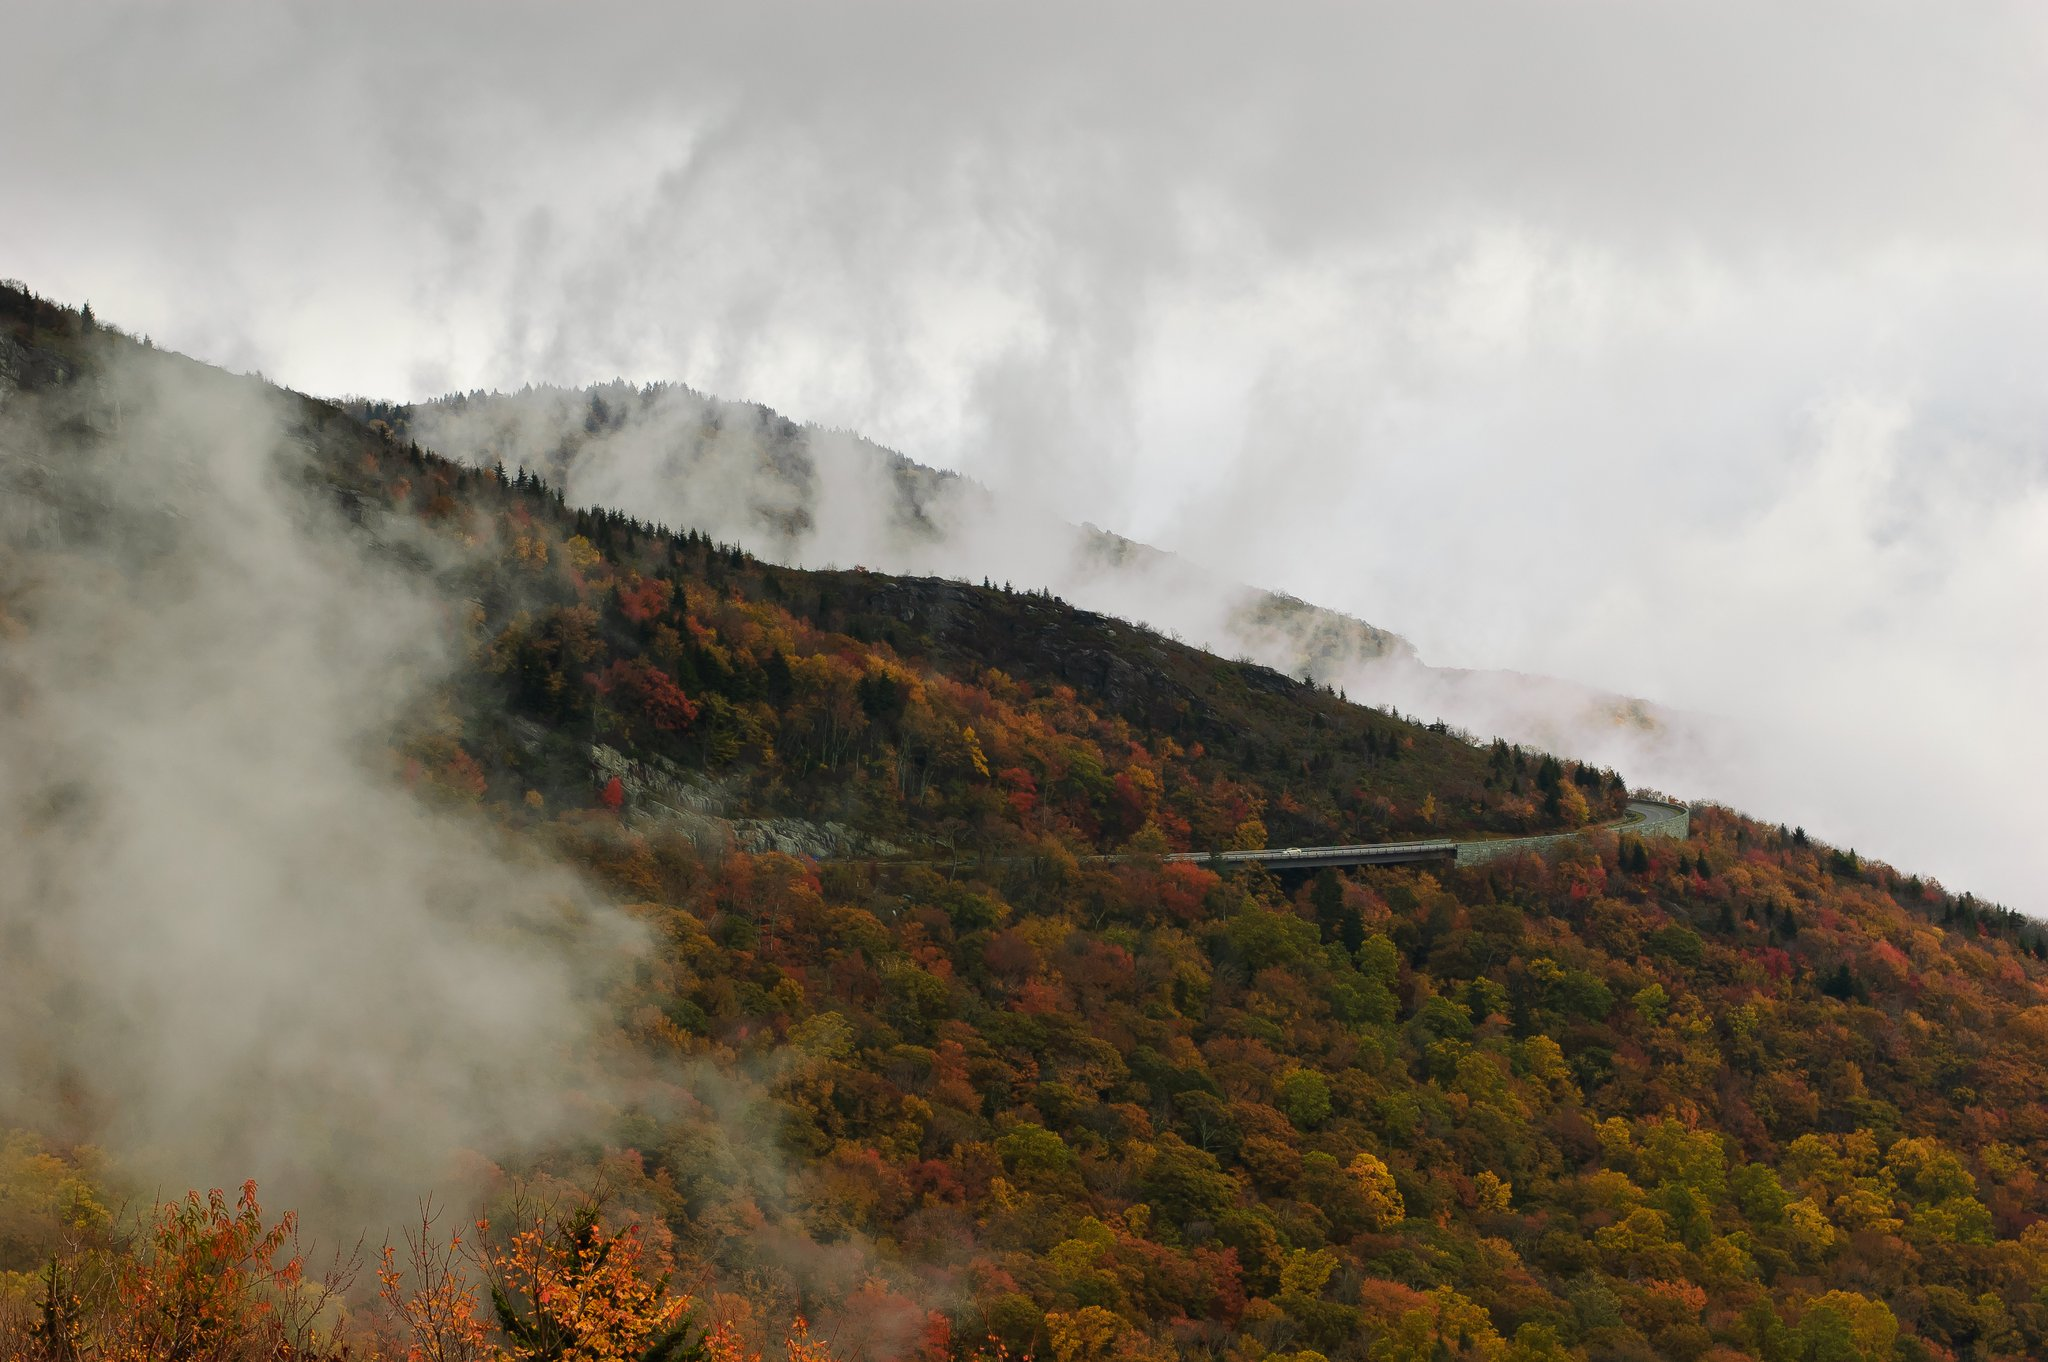 (Morning Fog along The Blue Ridge Parkway - Photo by Kyle Tsui /Flickr)